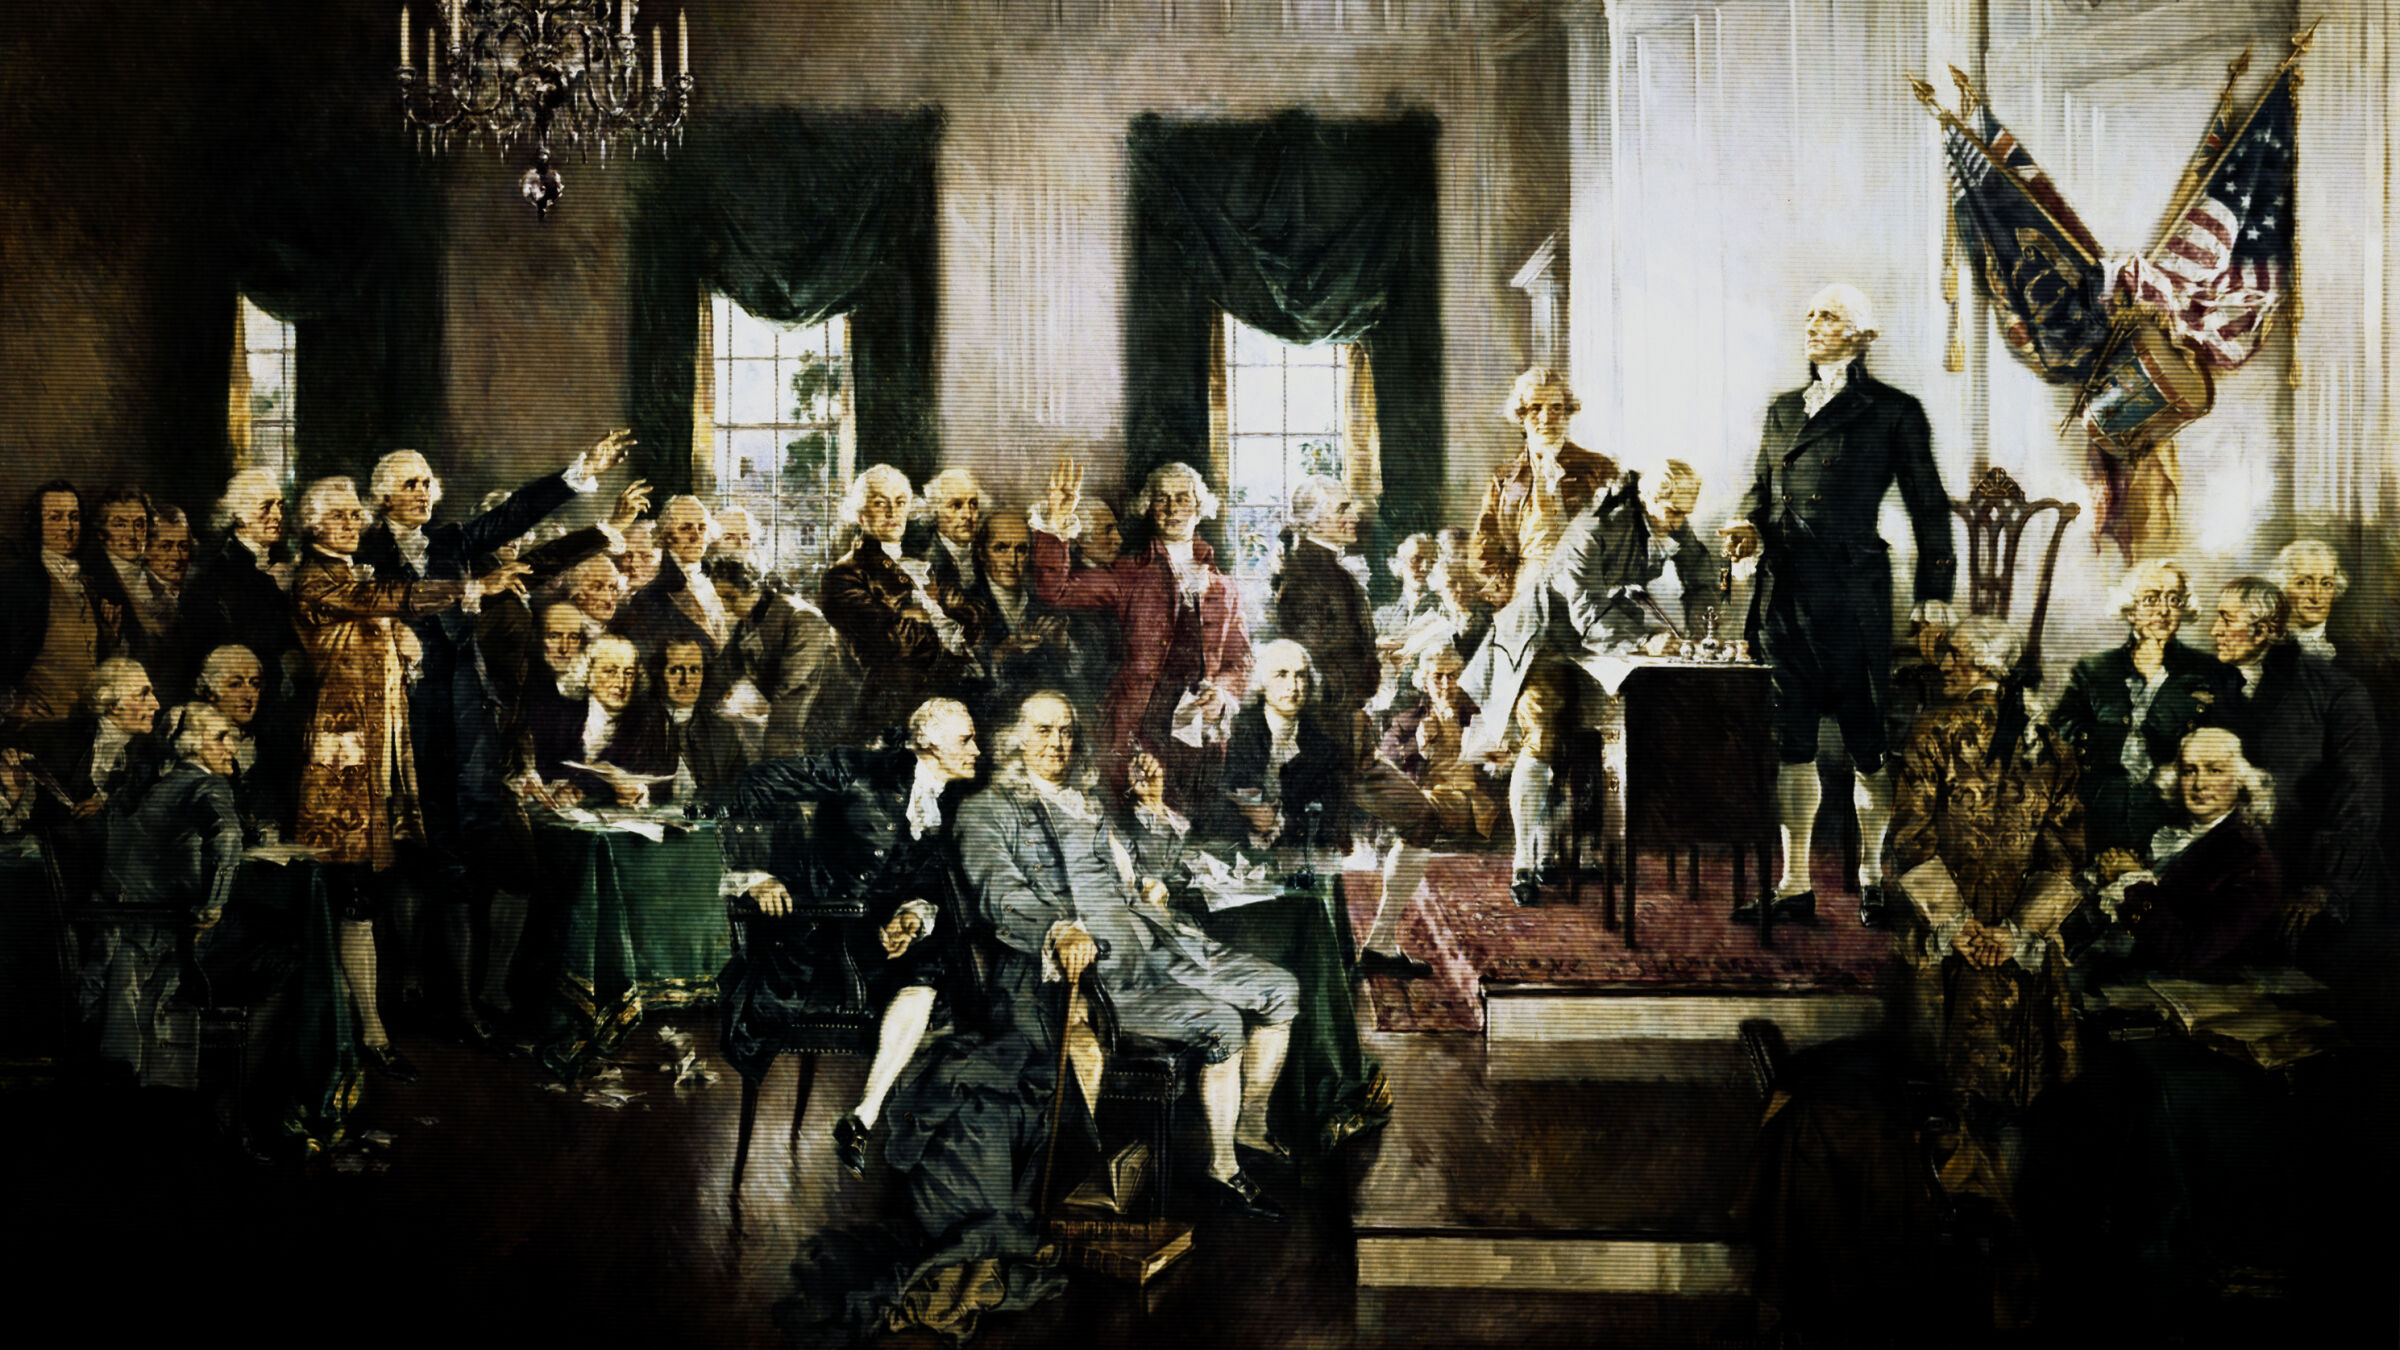 Scene at the signing of the constitution of the united states b.jpg